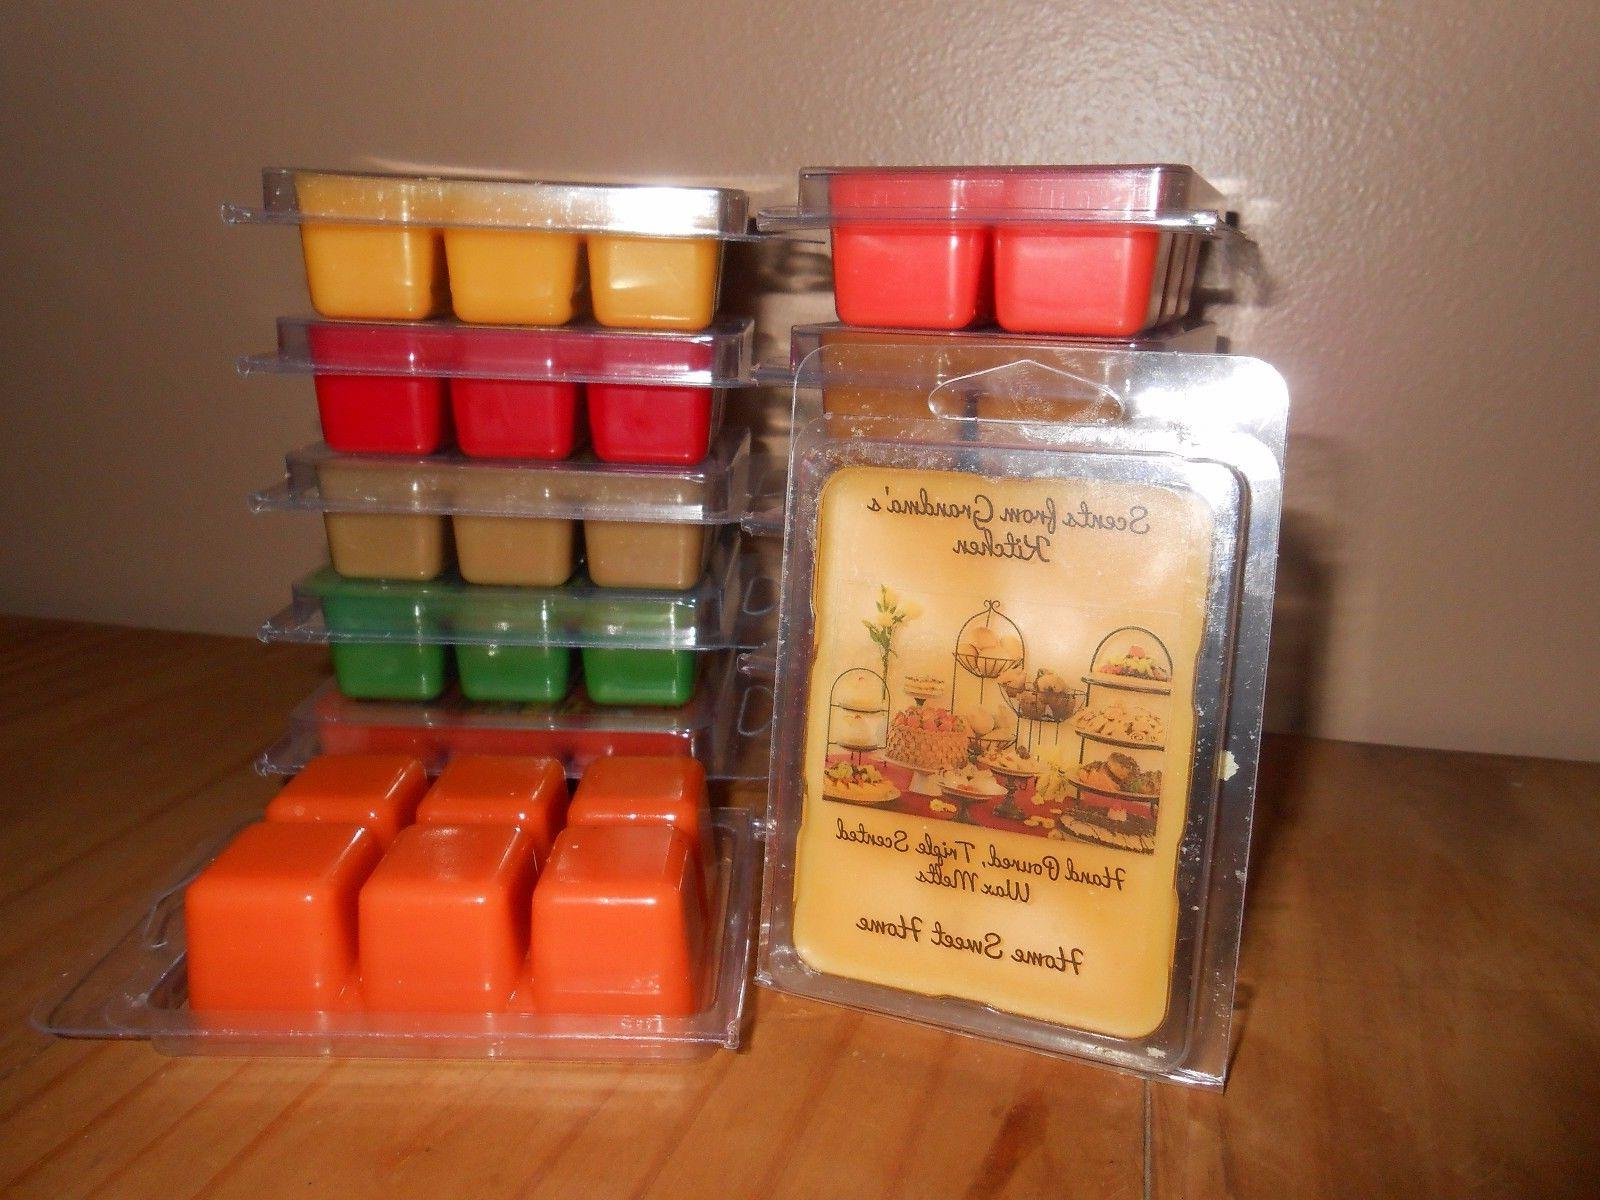 Scents Kitchen *HEAVILY SCENTED* Wax Melts